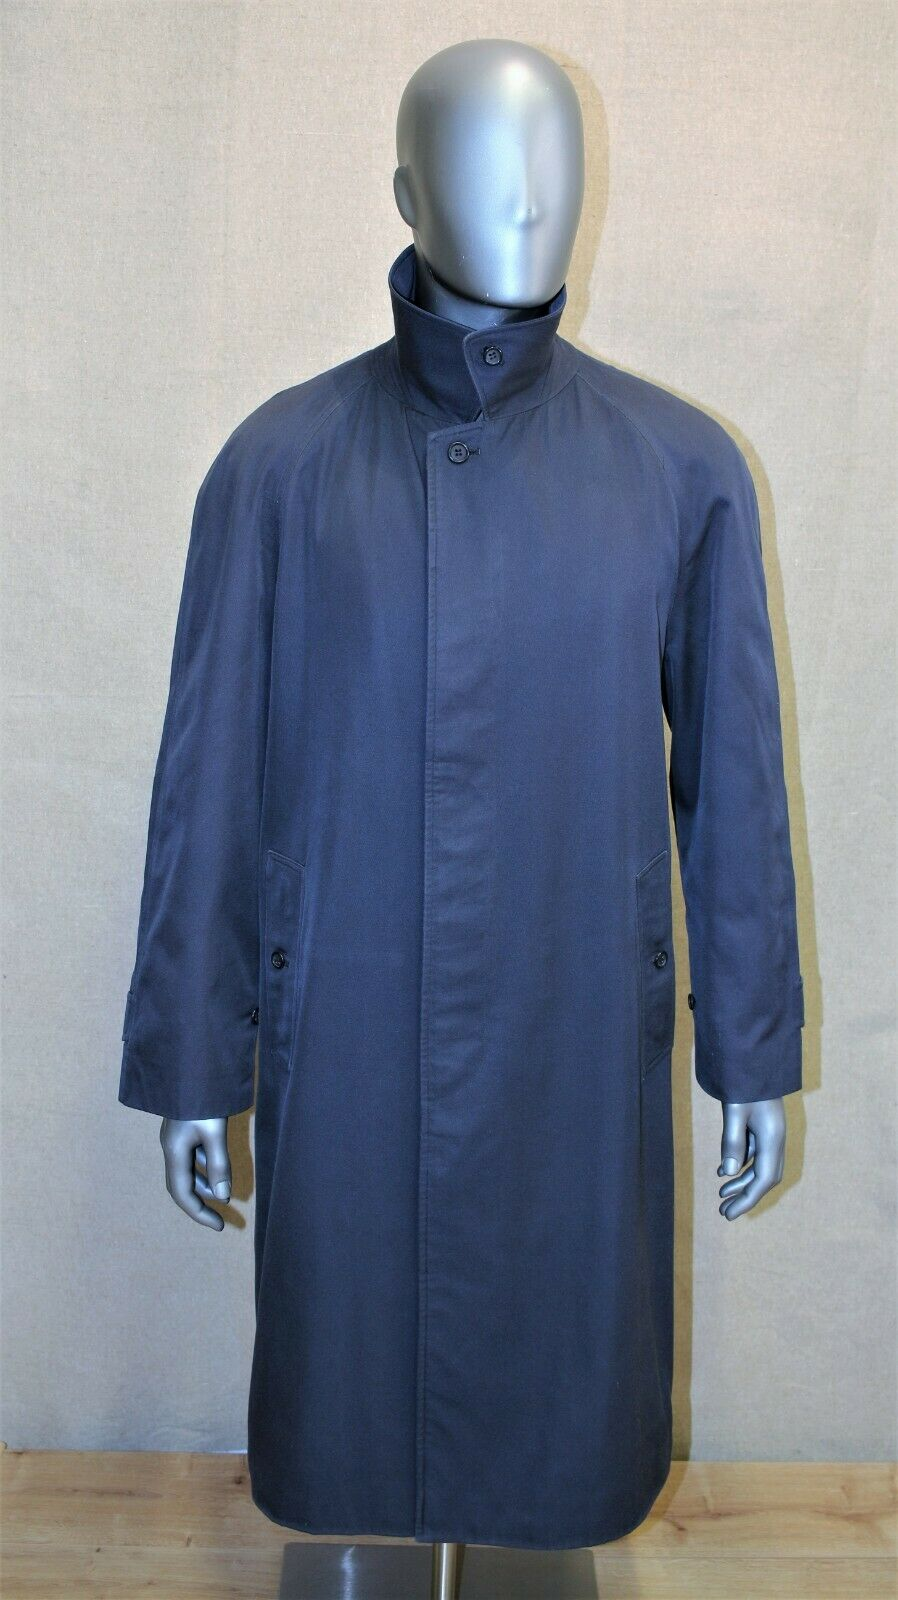 Trench imperméable burberry prorsum raglan bleu marine 52 reg made in england